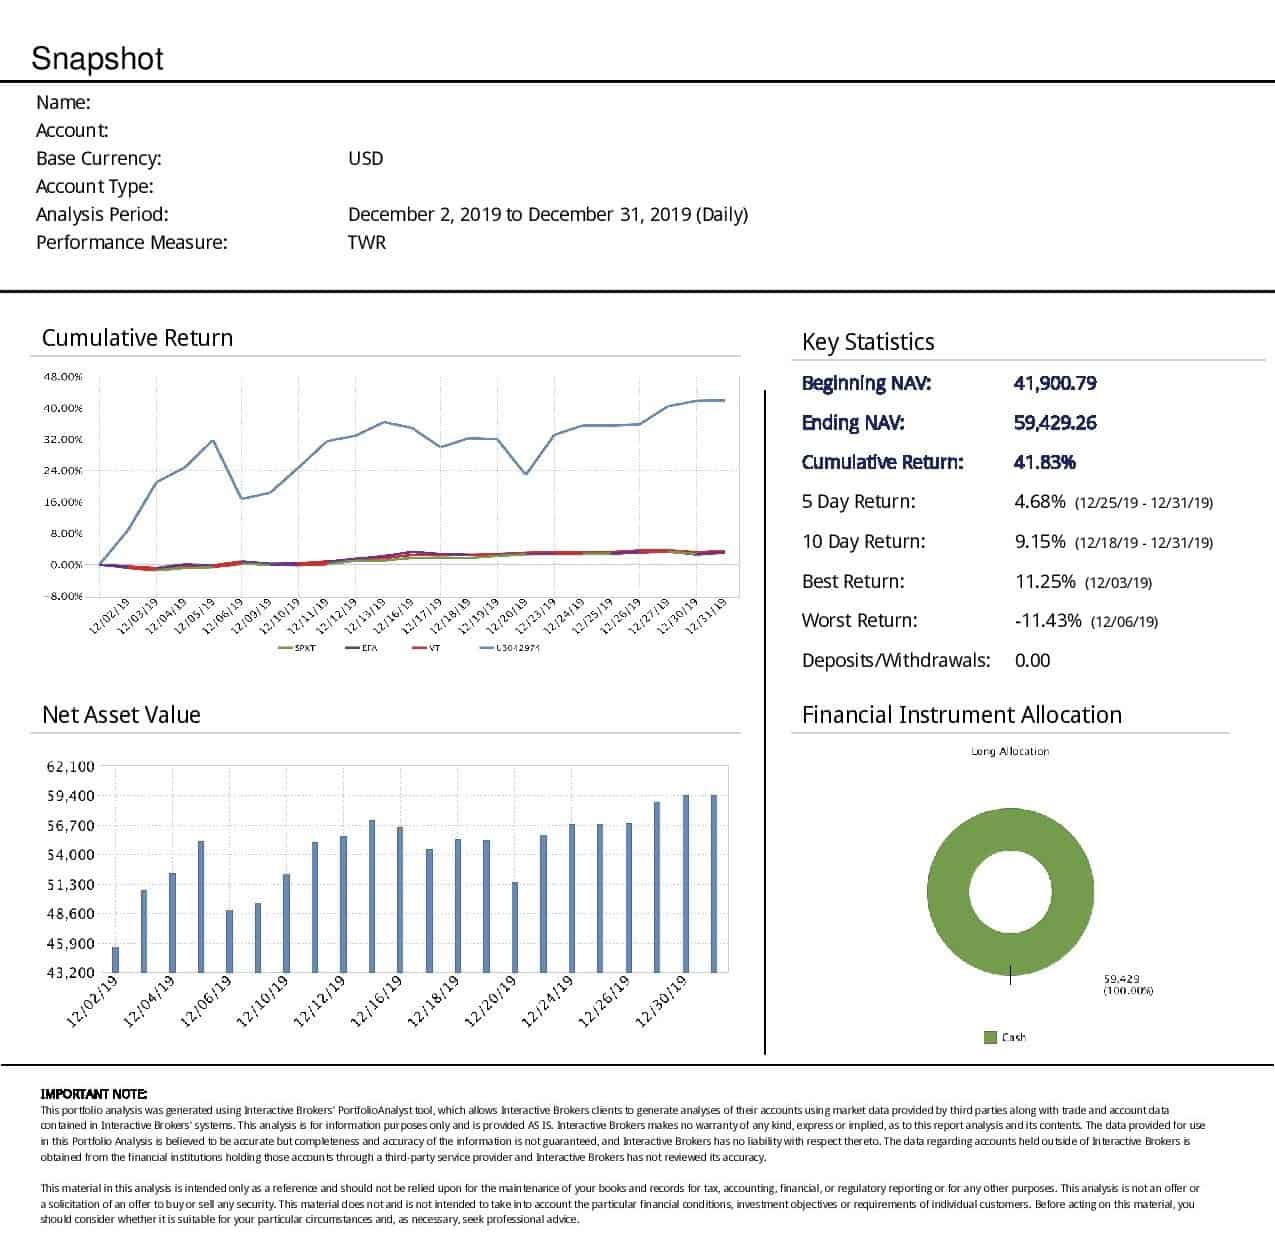 Sample of managed accounts returns in December 2019